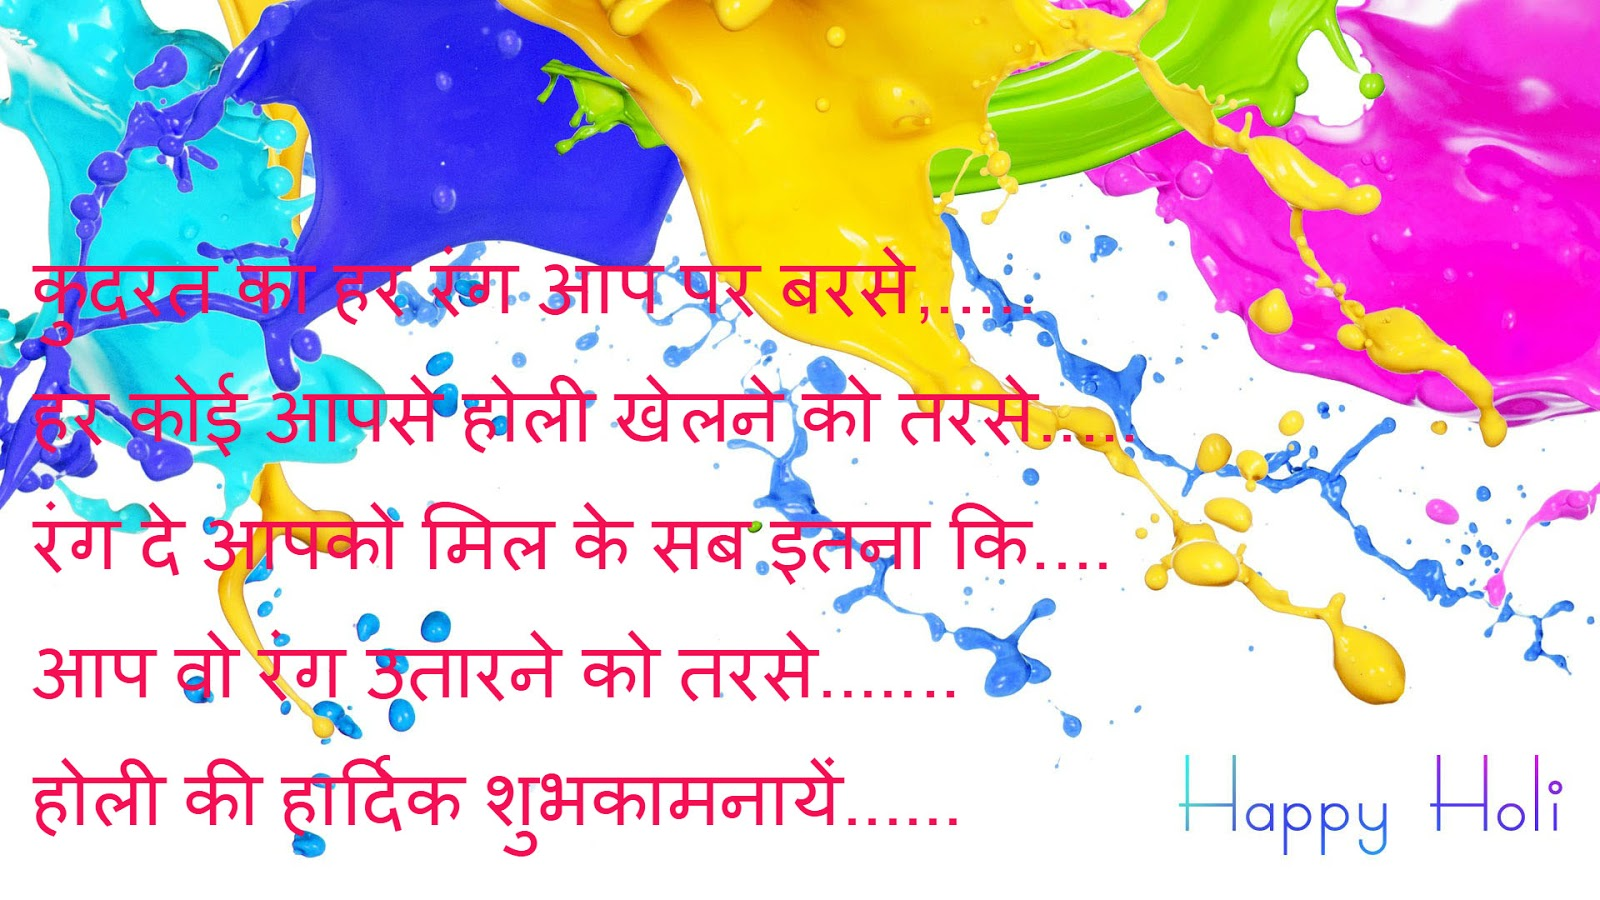 holi holi img2016%2B%25282%2529 - Best Shayari images of holi 50+